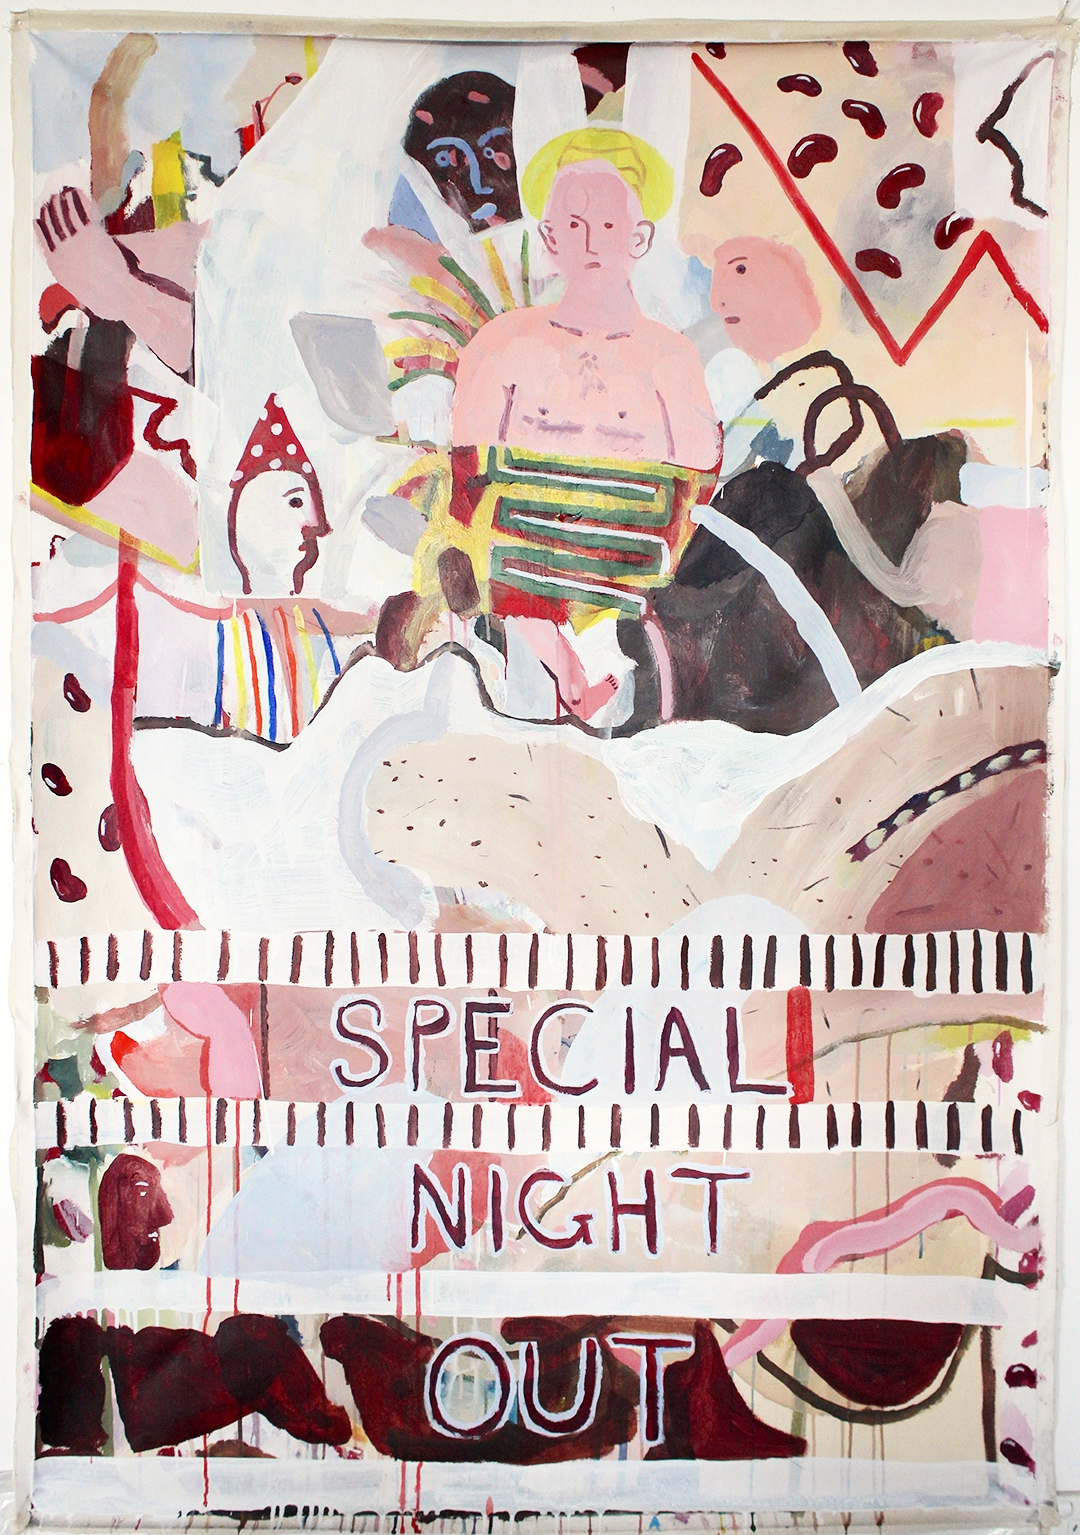 Special Night Out 2015 Acrylic on canvas 200 x 120 cm